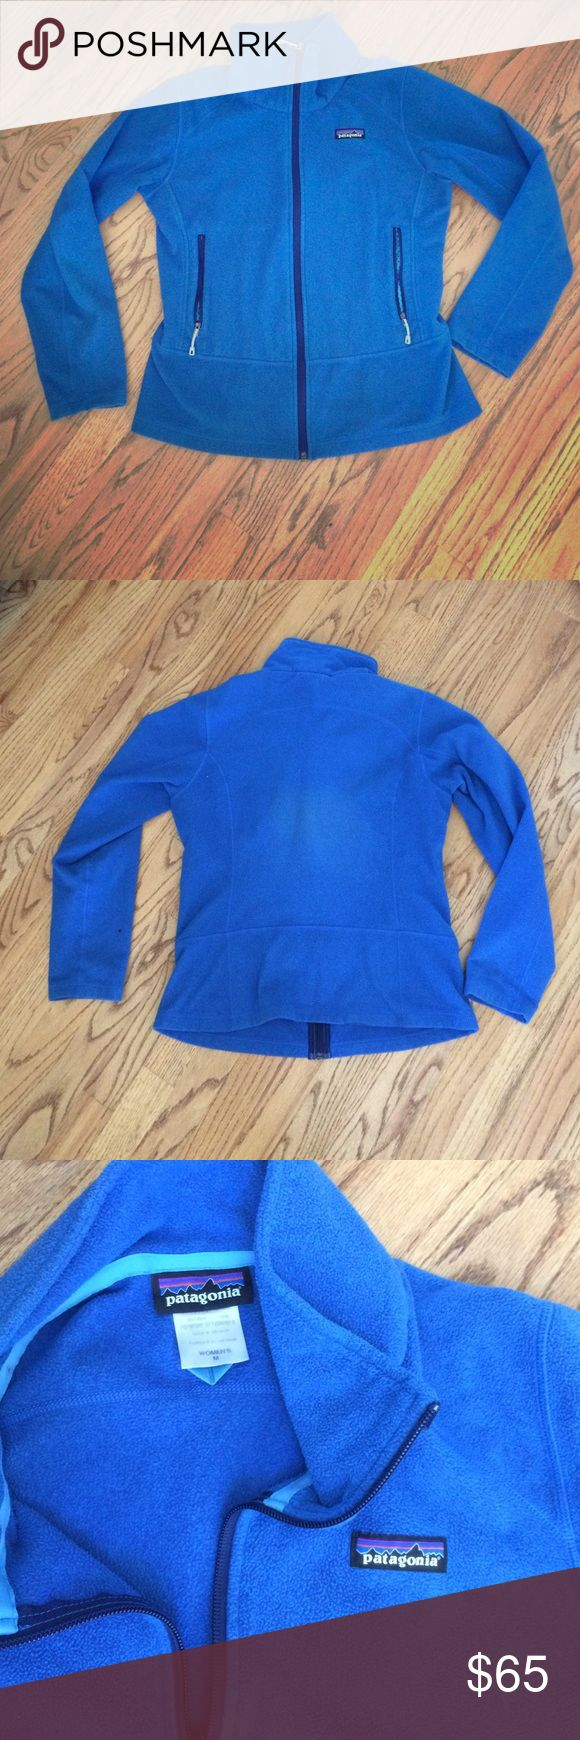 Patagonia fleece jacket Sz M Excellent condition except the tiny hole on left arm.  The pic of back is lighting and NOT a stain/discoloration. Very warm layering piece or for Spring, Summer, Fall.  Color is really pretty - closer to first pic.  True to size; fits up to size 8 possibly small 10.  No trades.  Willing to negotiate but not necessarily going to accept an offer.  Discount for bundles. Please use offer option and not comments.  Thanks! Patagonia Jackets & Coats